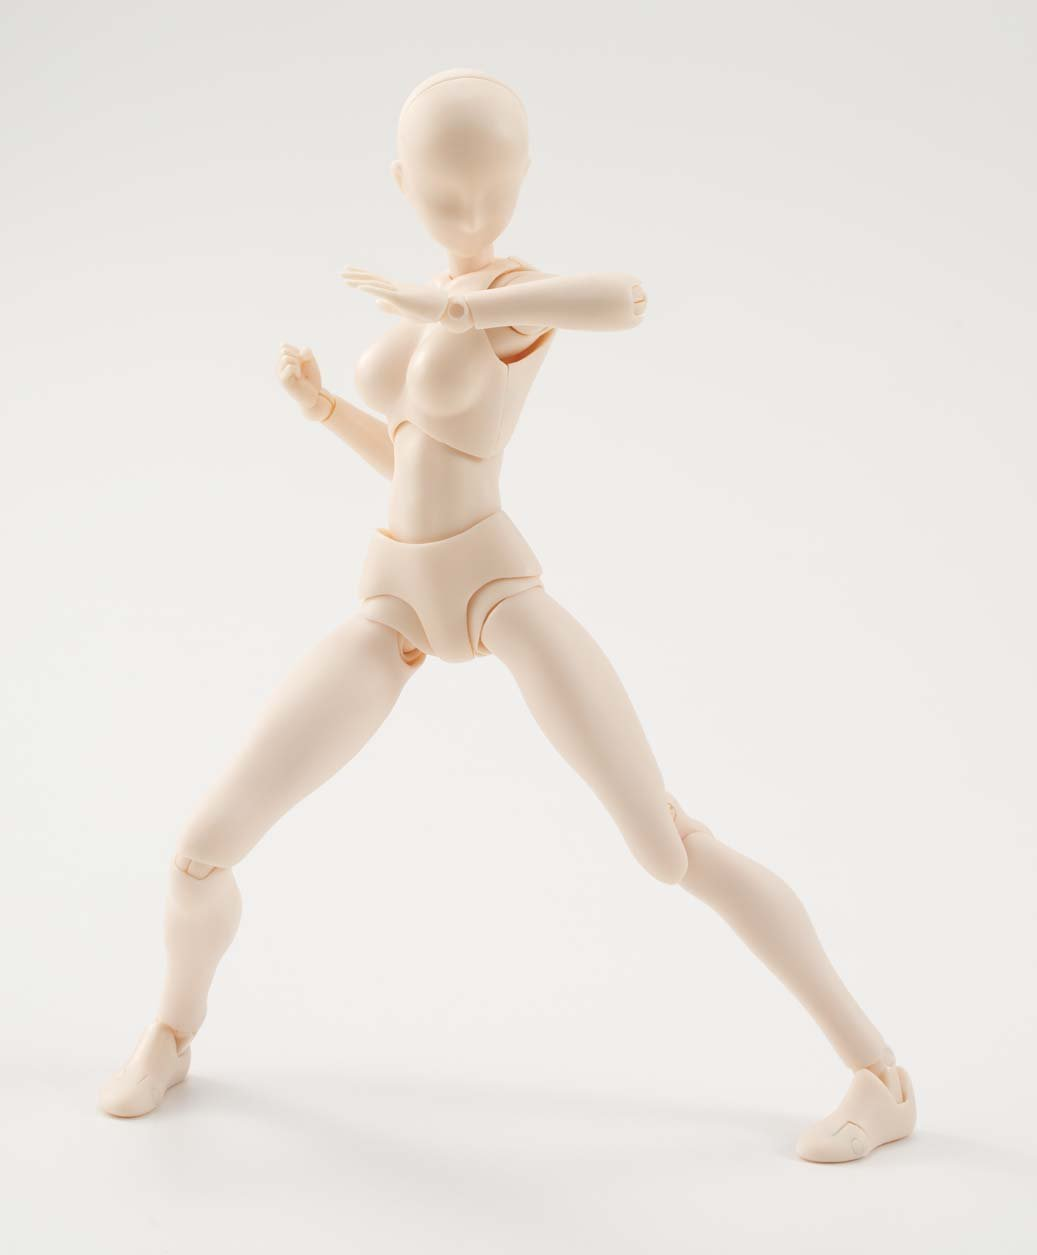 S.H. Figuarts Body-chan  (Pale orange Color Ver.)  About 135mm